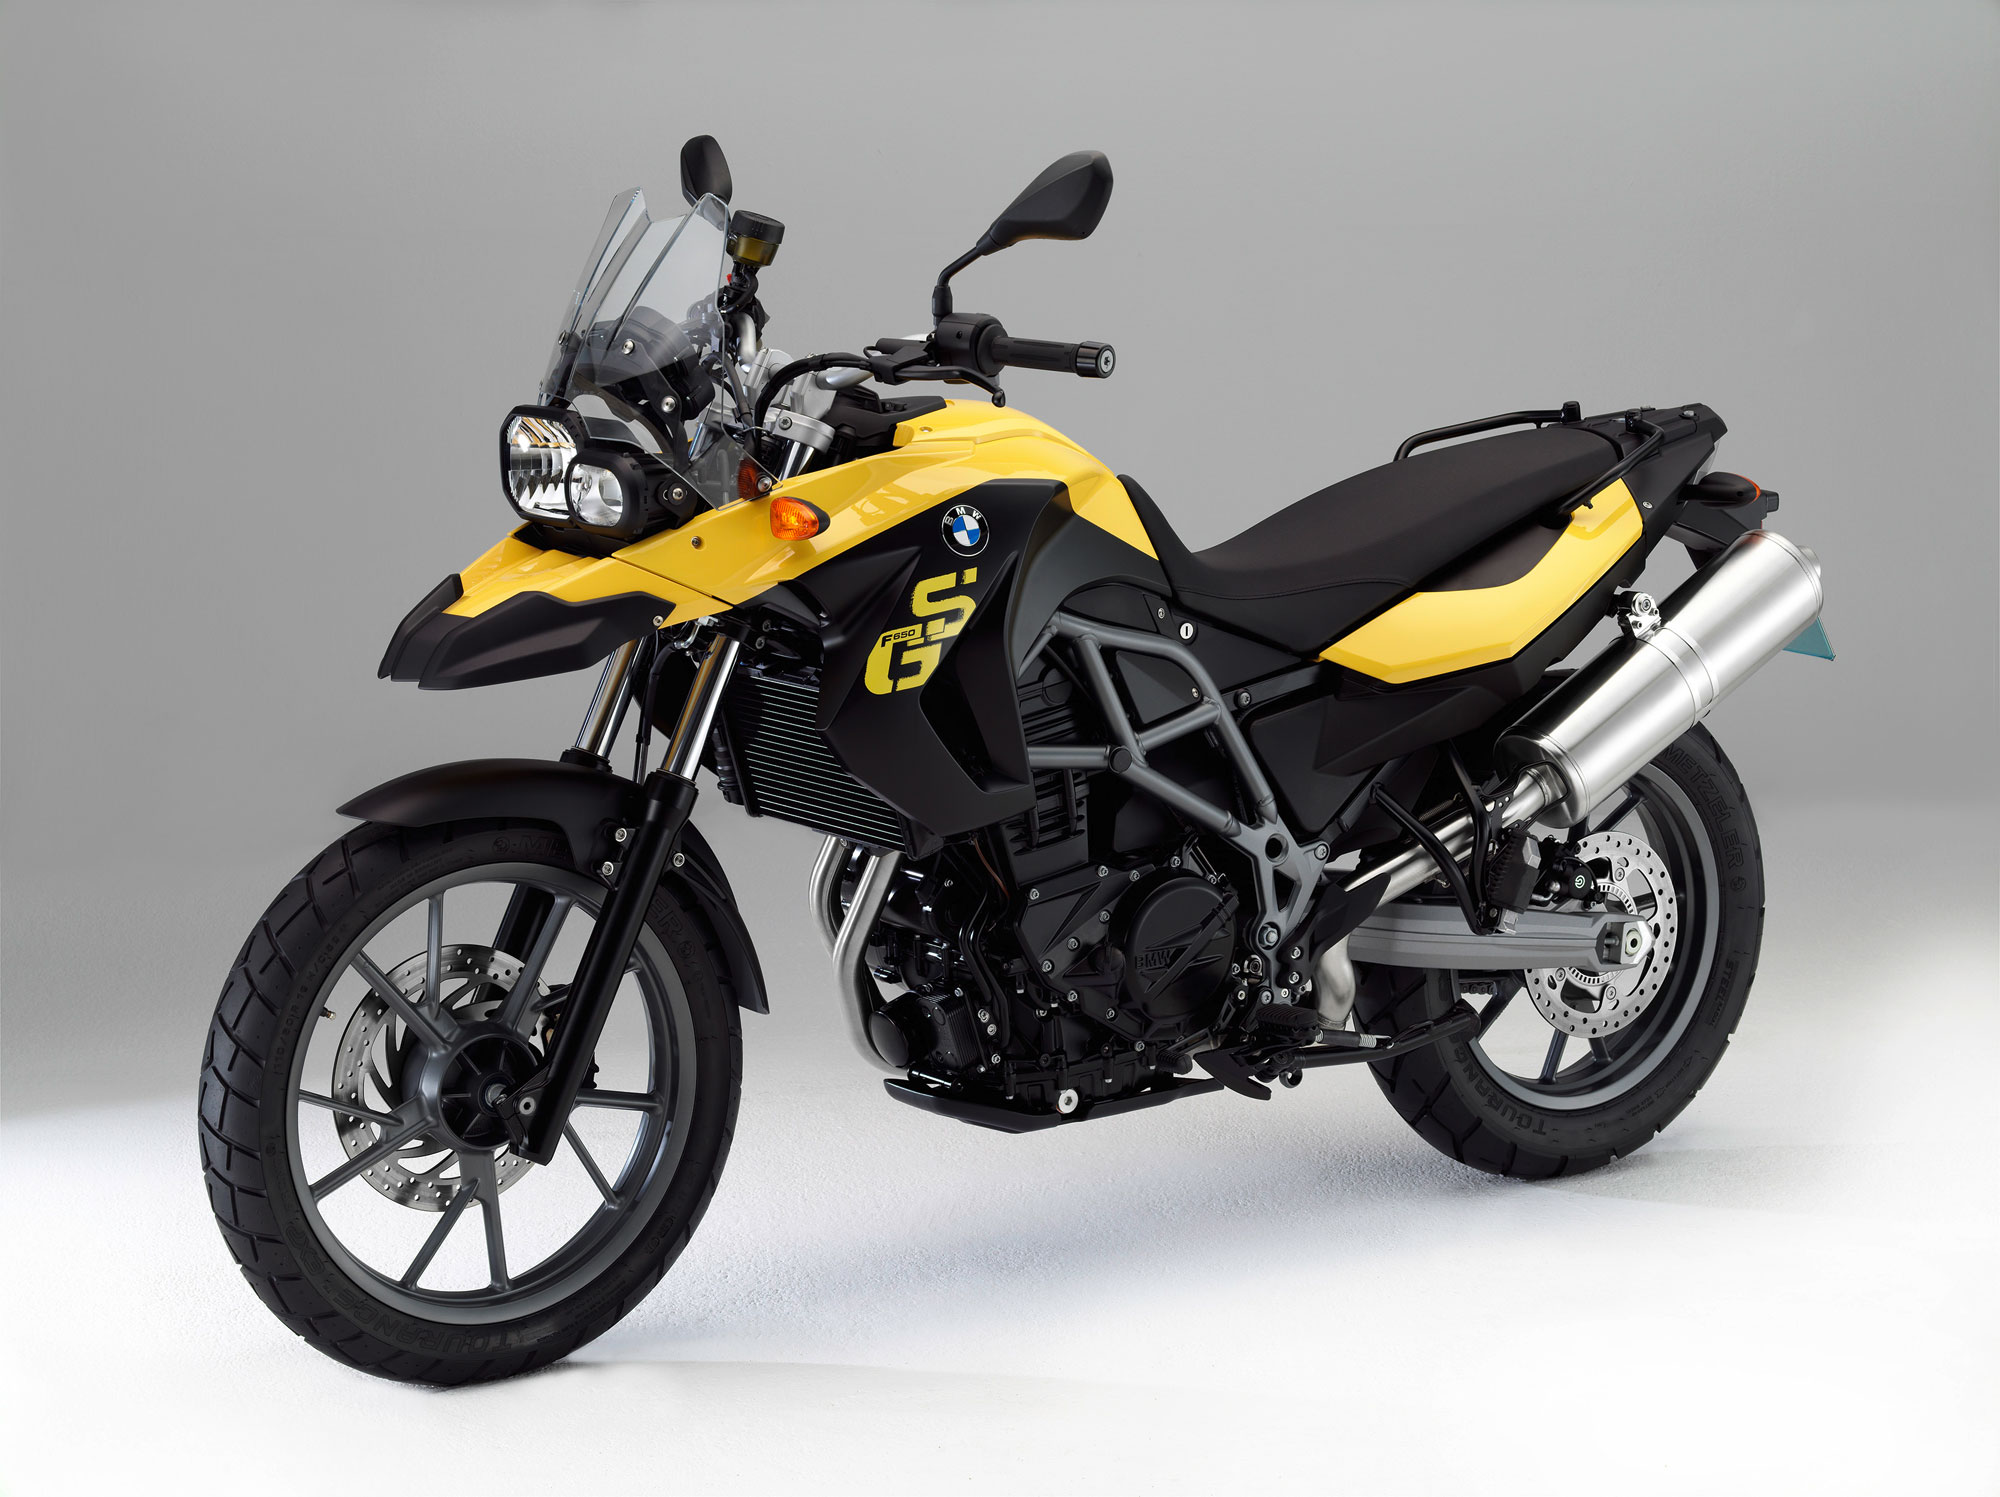 BMW G 650 GS 2011 images #8385